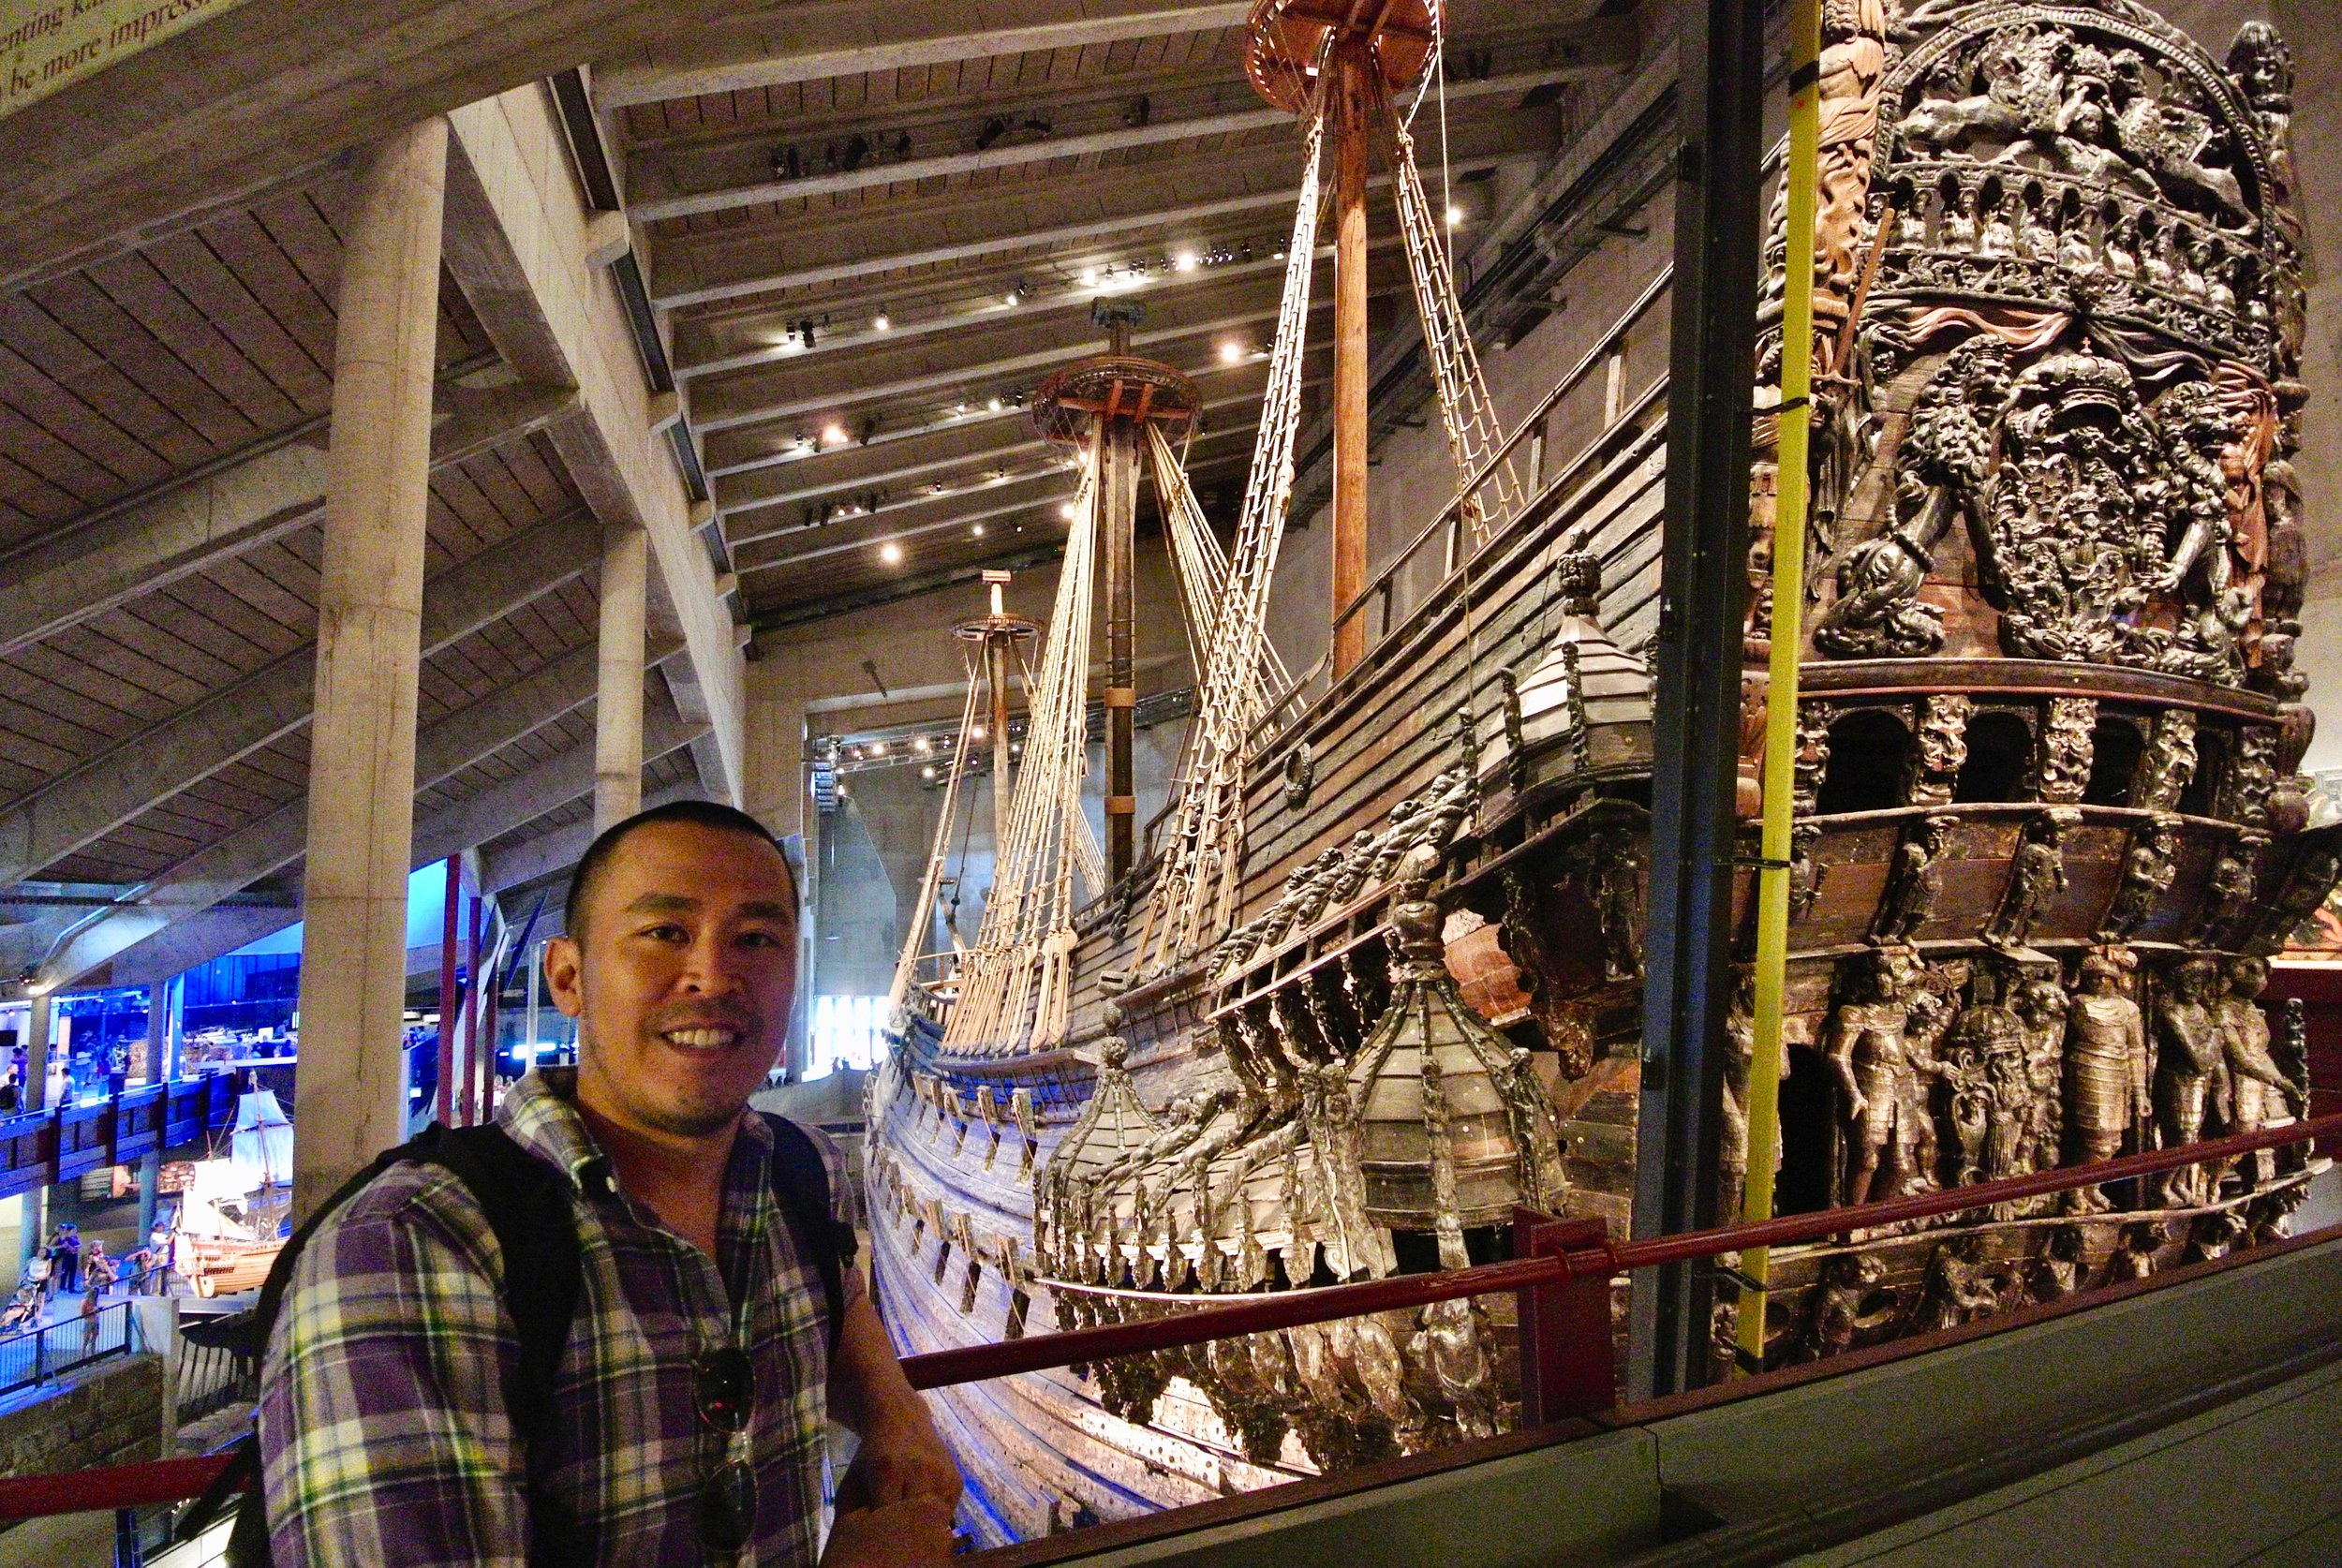 At the Vasa Museum, an elaborate ship that the king built that sunk 30 minutes into its maiden voyage.  They raised it 333 years after..jpeg